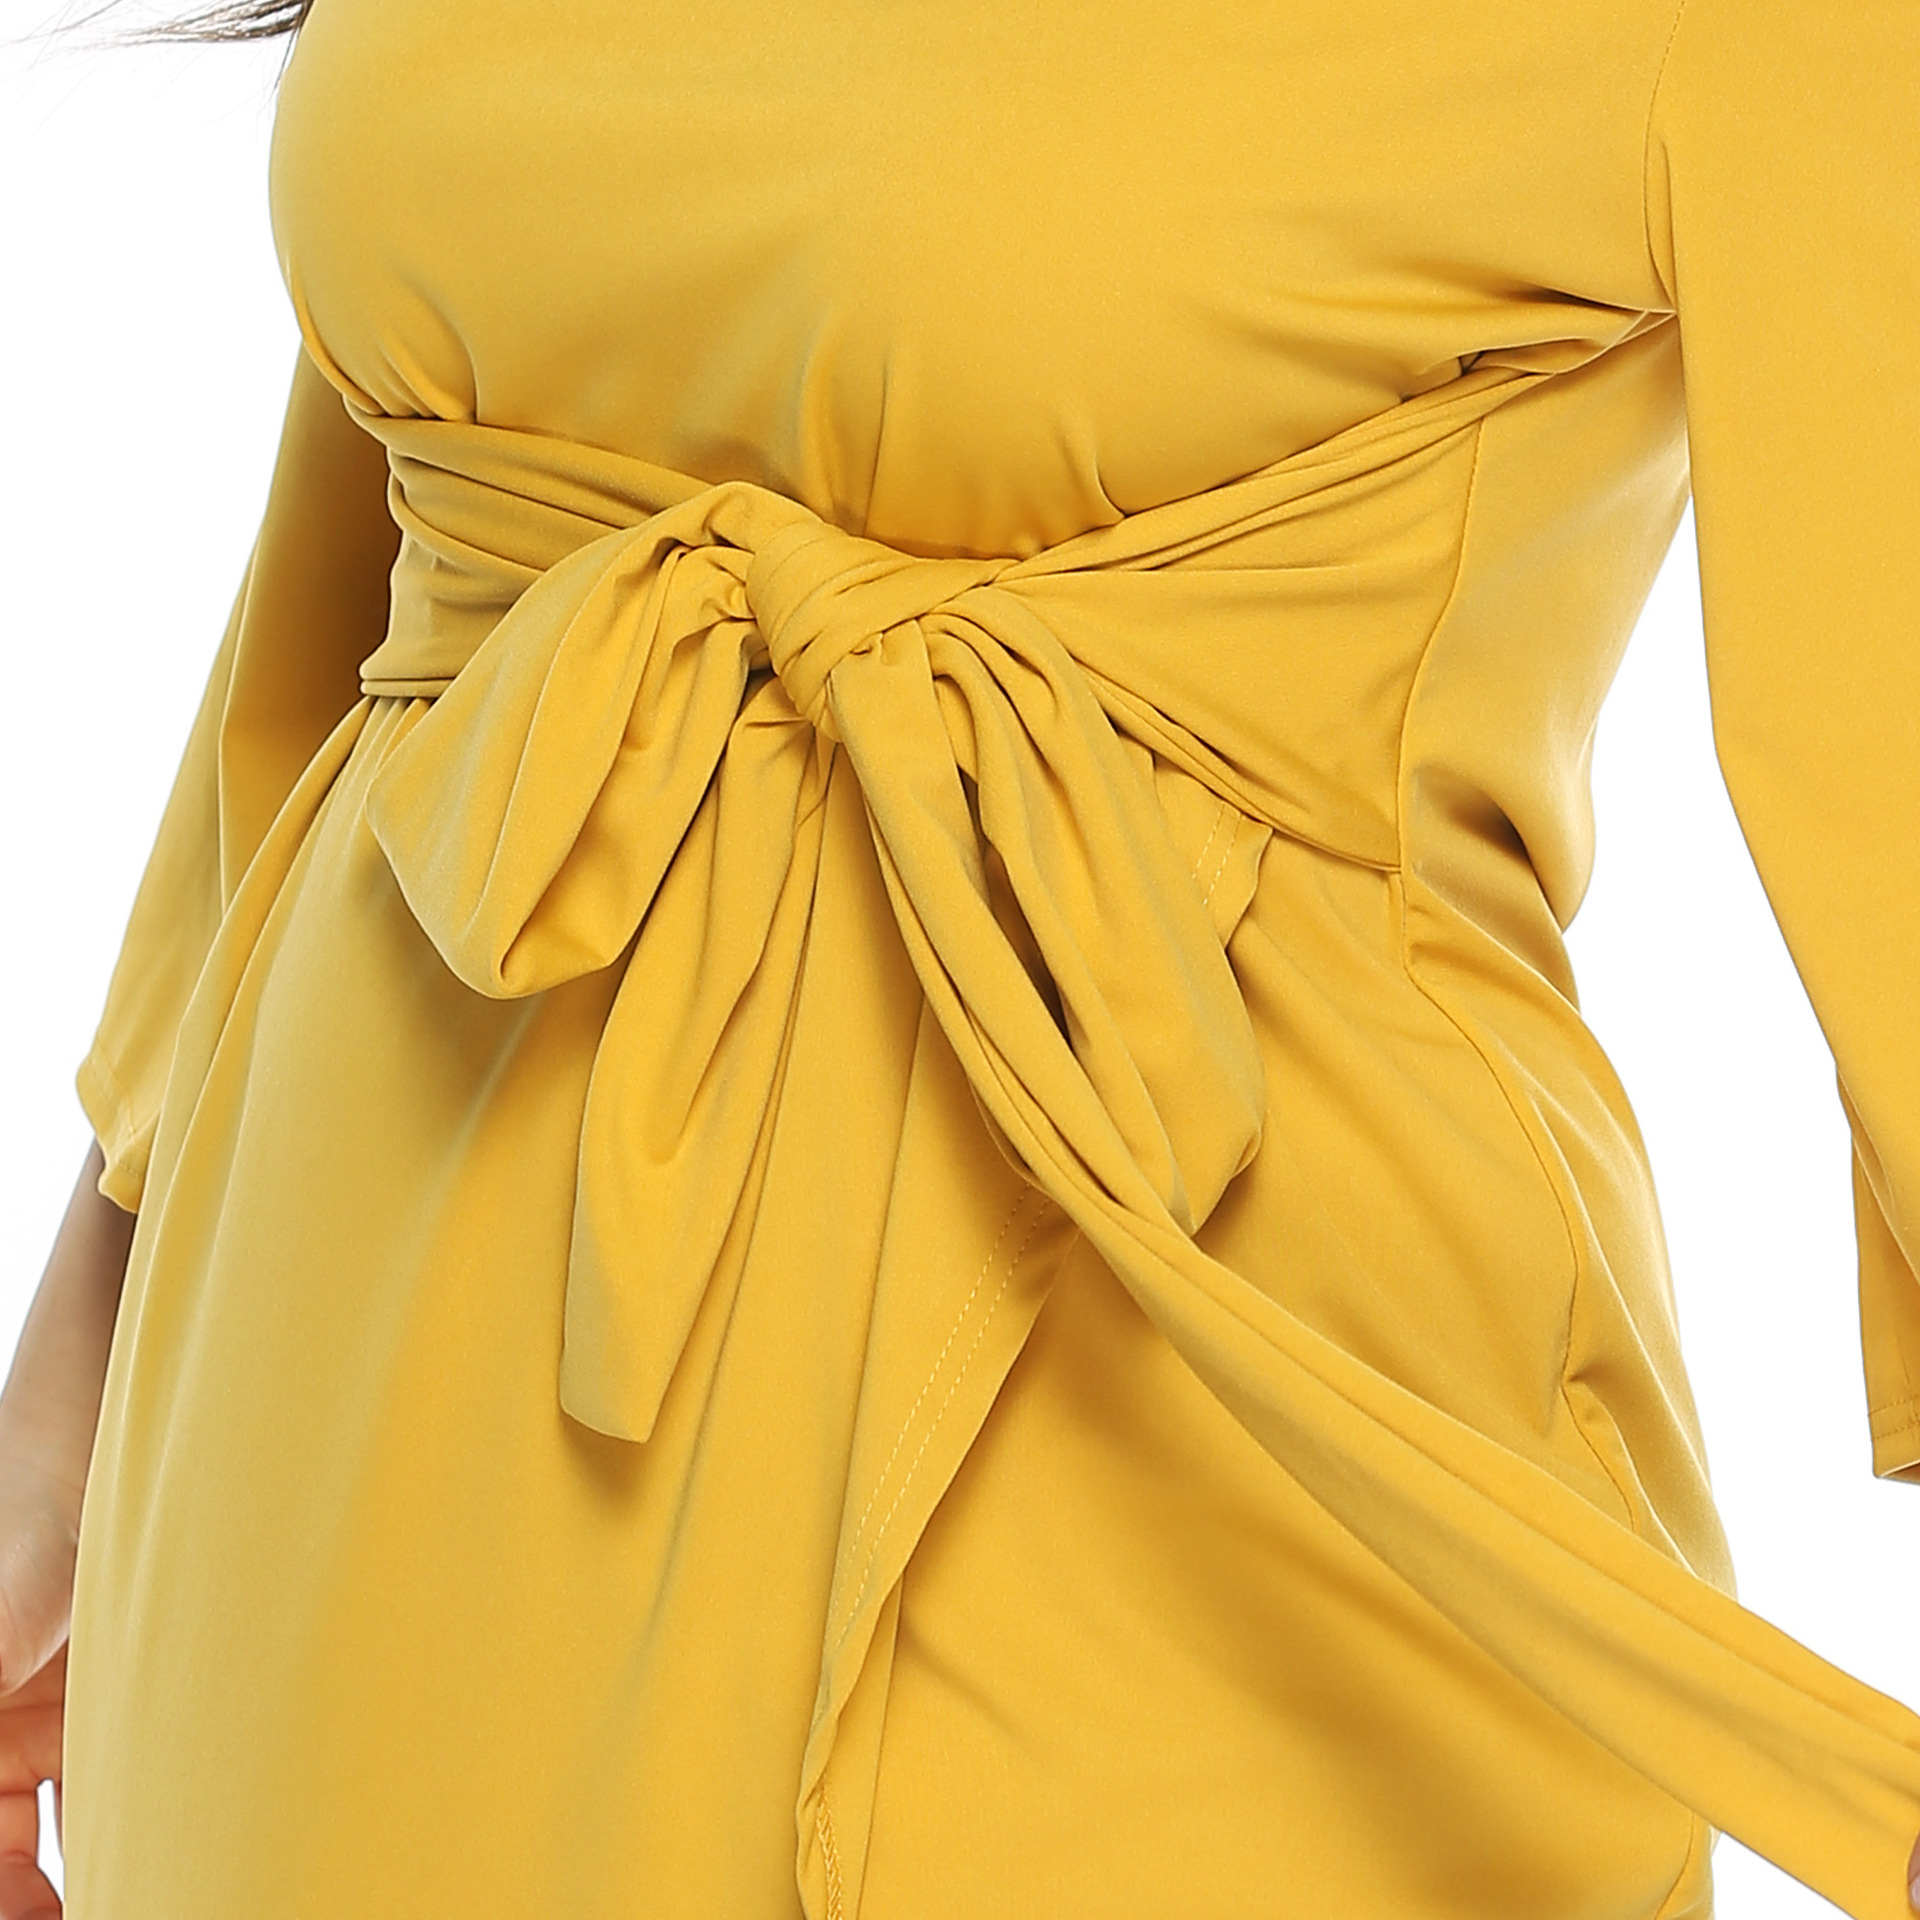 PGSD Autumn casual simple Irregular solid color Crossbanded O Neck Three Quarter horn sleeve Dress Big size women clothes 4XL in Dresses from Women 39 s Clothing